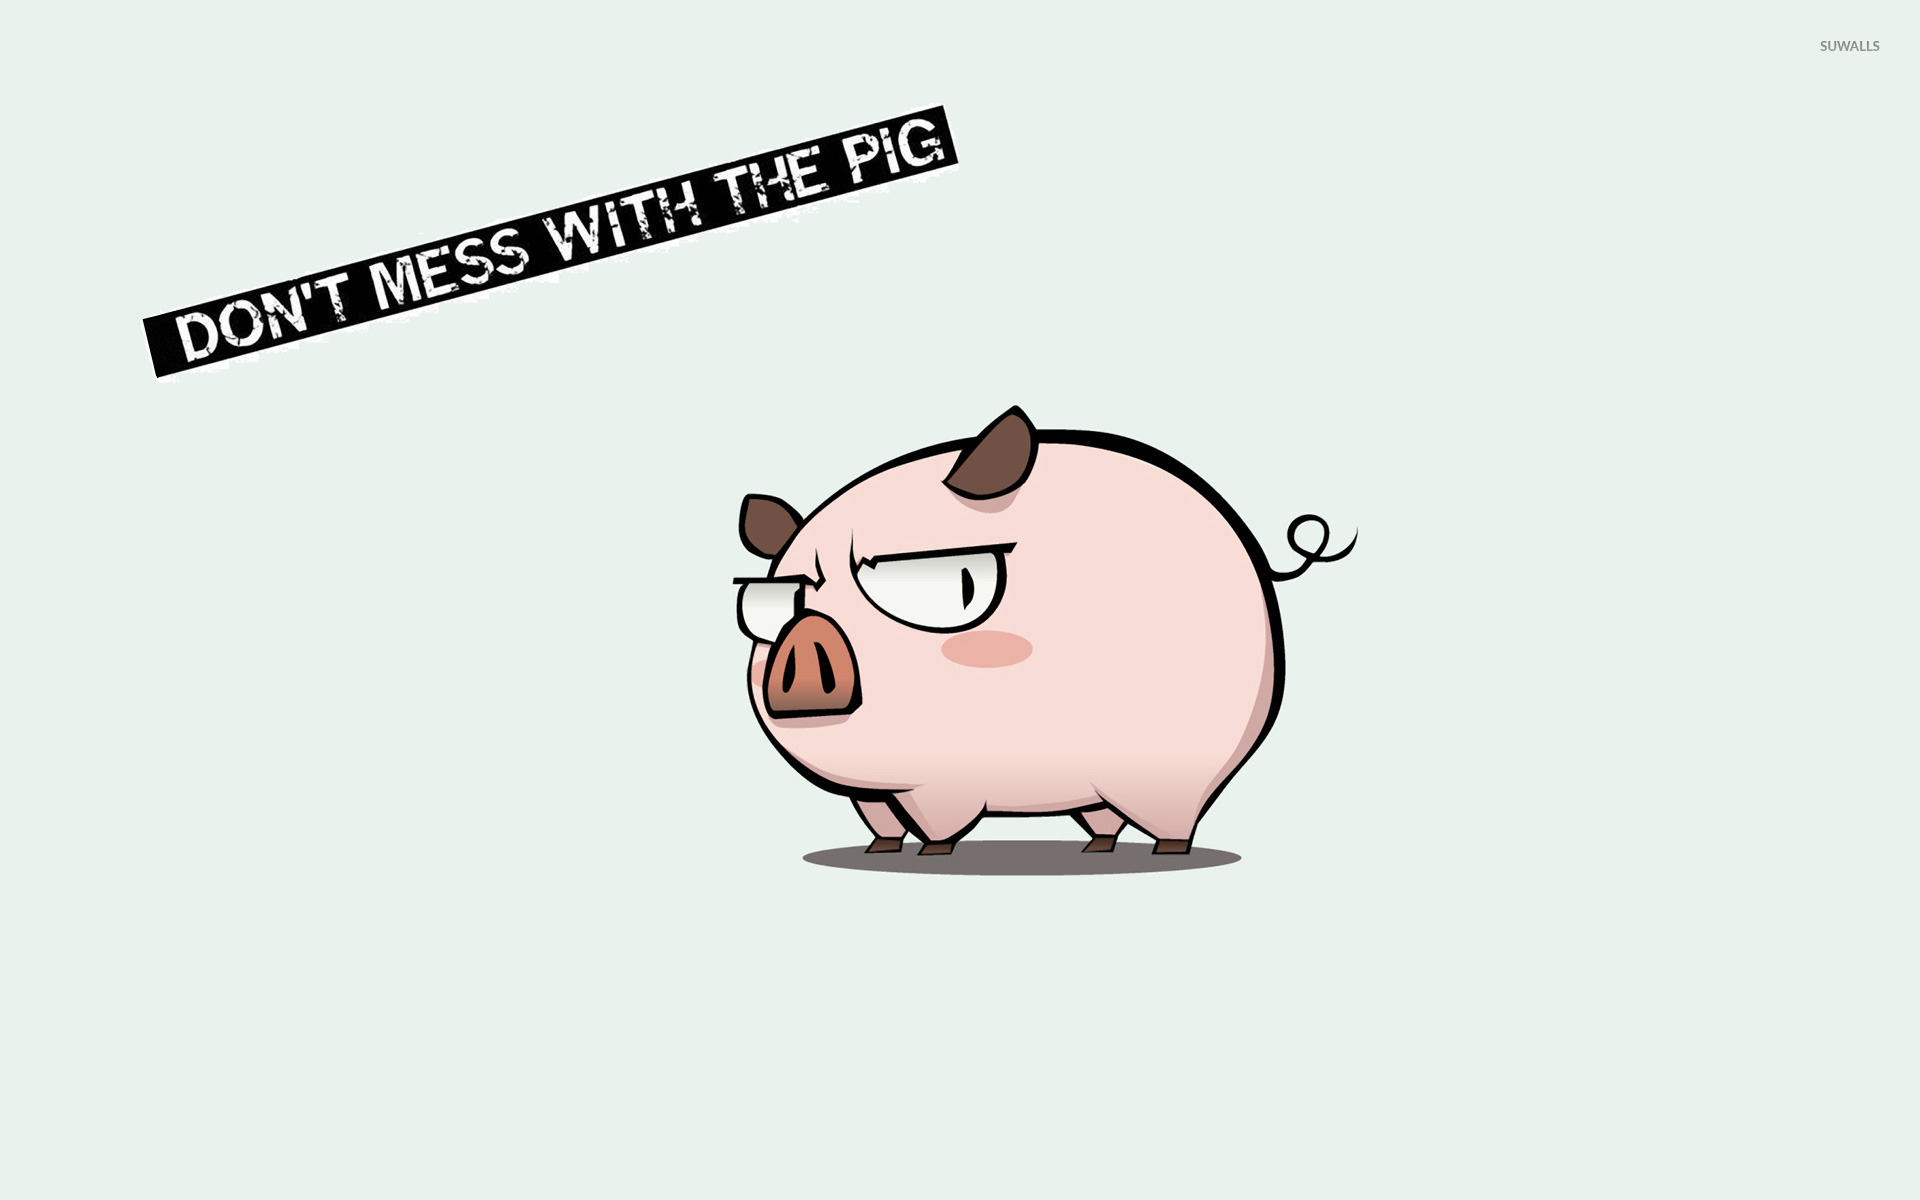 Don't mess with the pig wallpaper